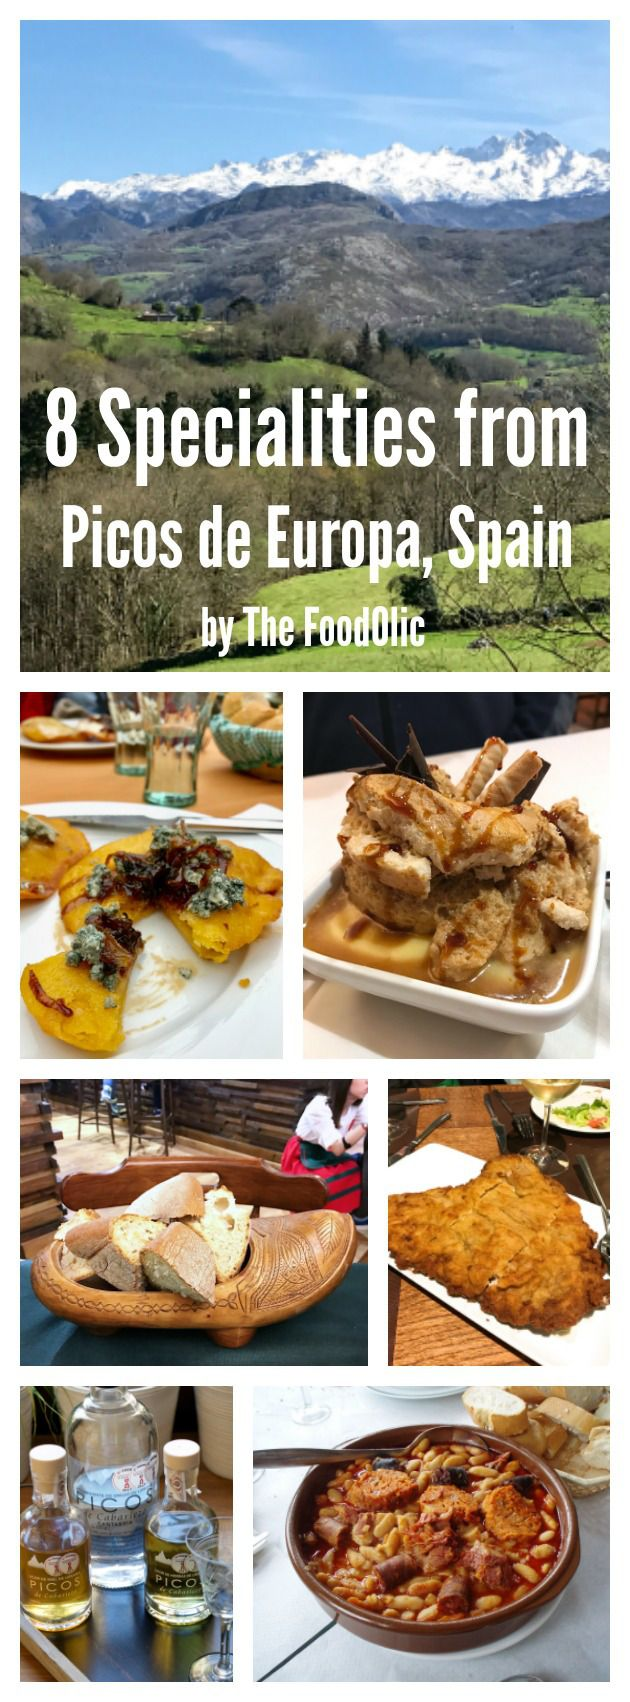 Specialities from the Nationa Park Picos de europa, Spain. #Spain #gastronomy #PicosdeEuropa